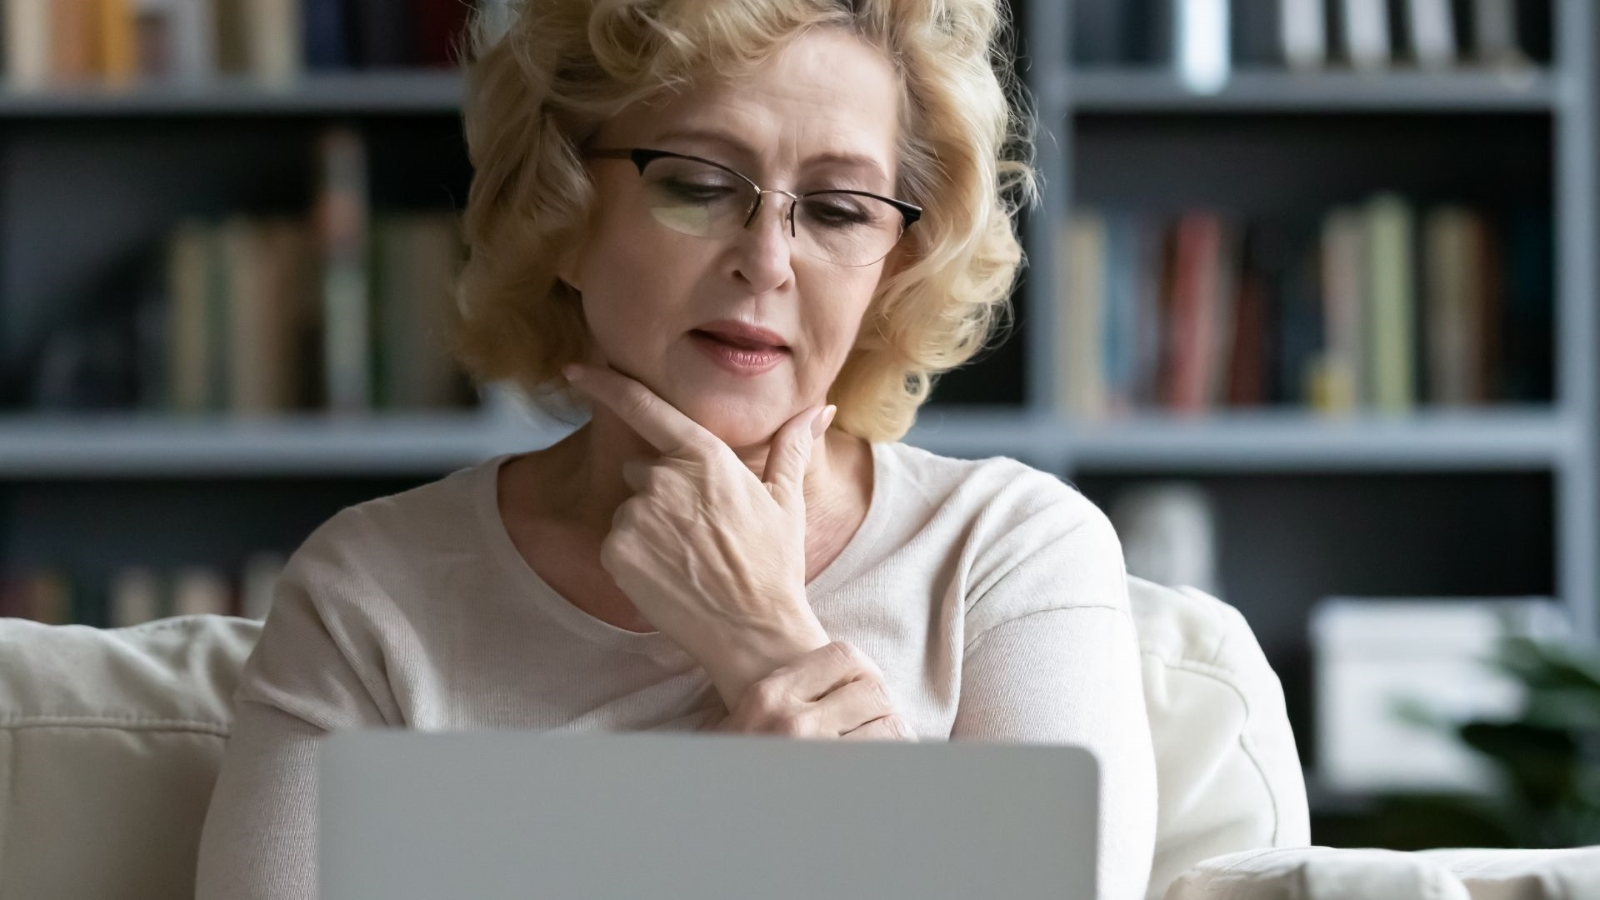 Senior Woman sitting at home on her sofa looking contemplative while staring at her laptop